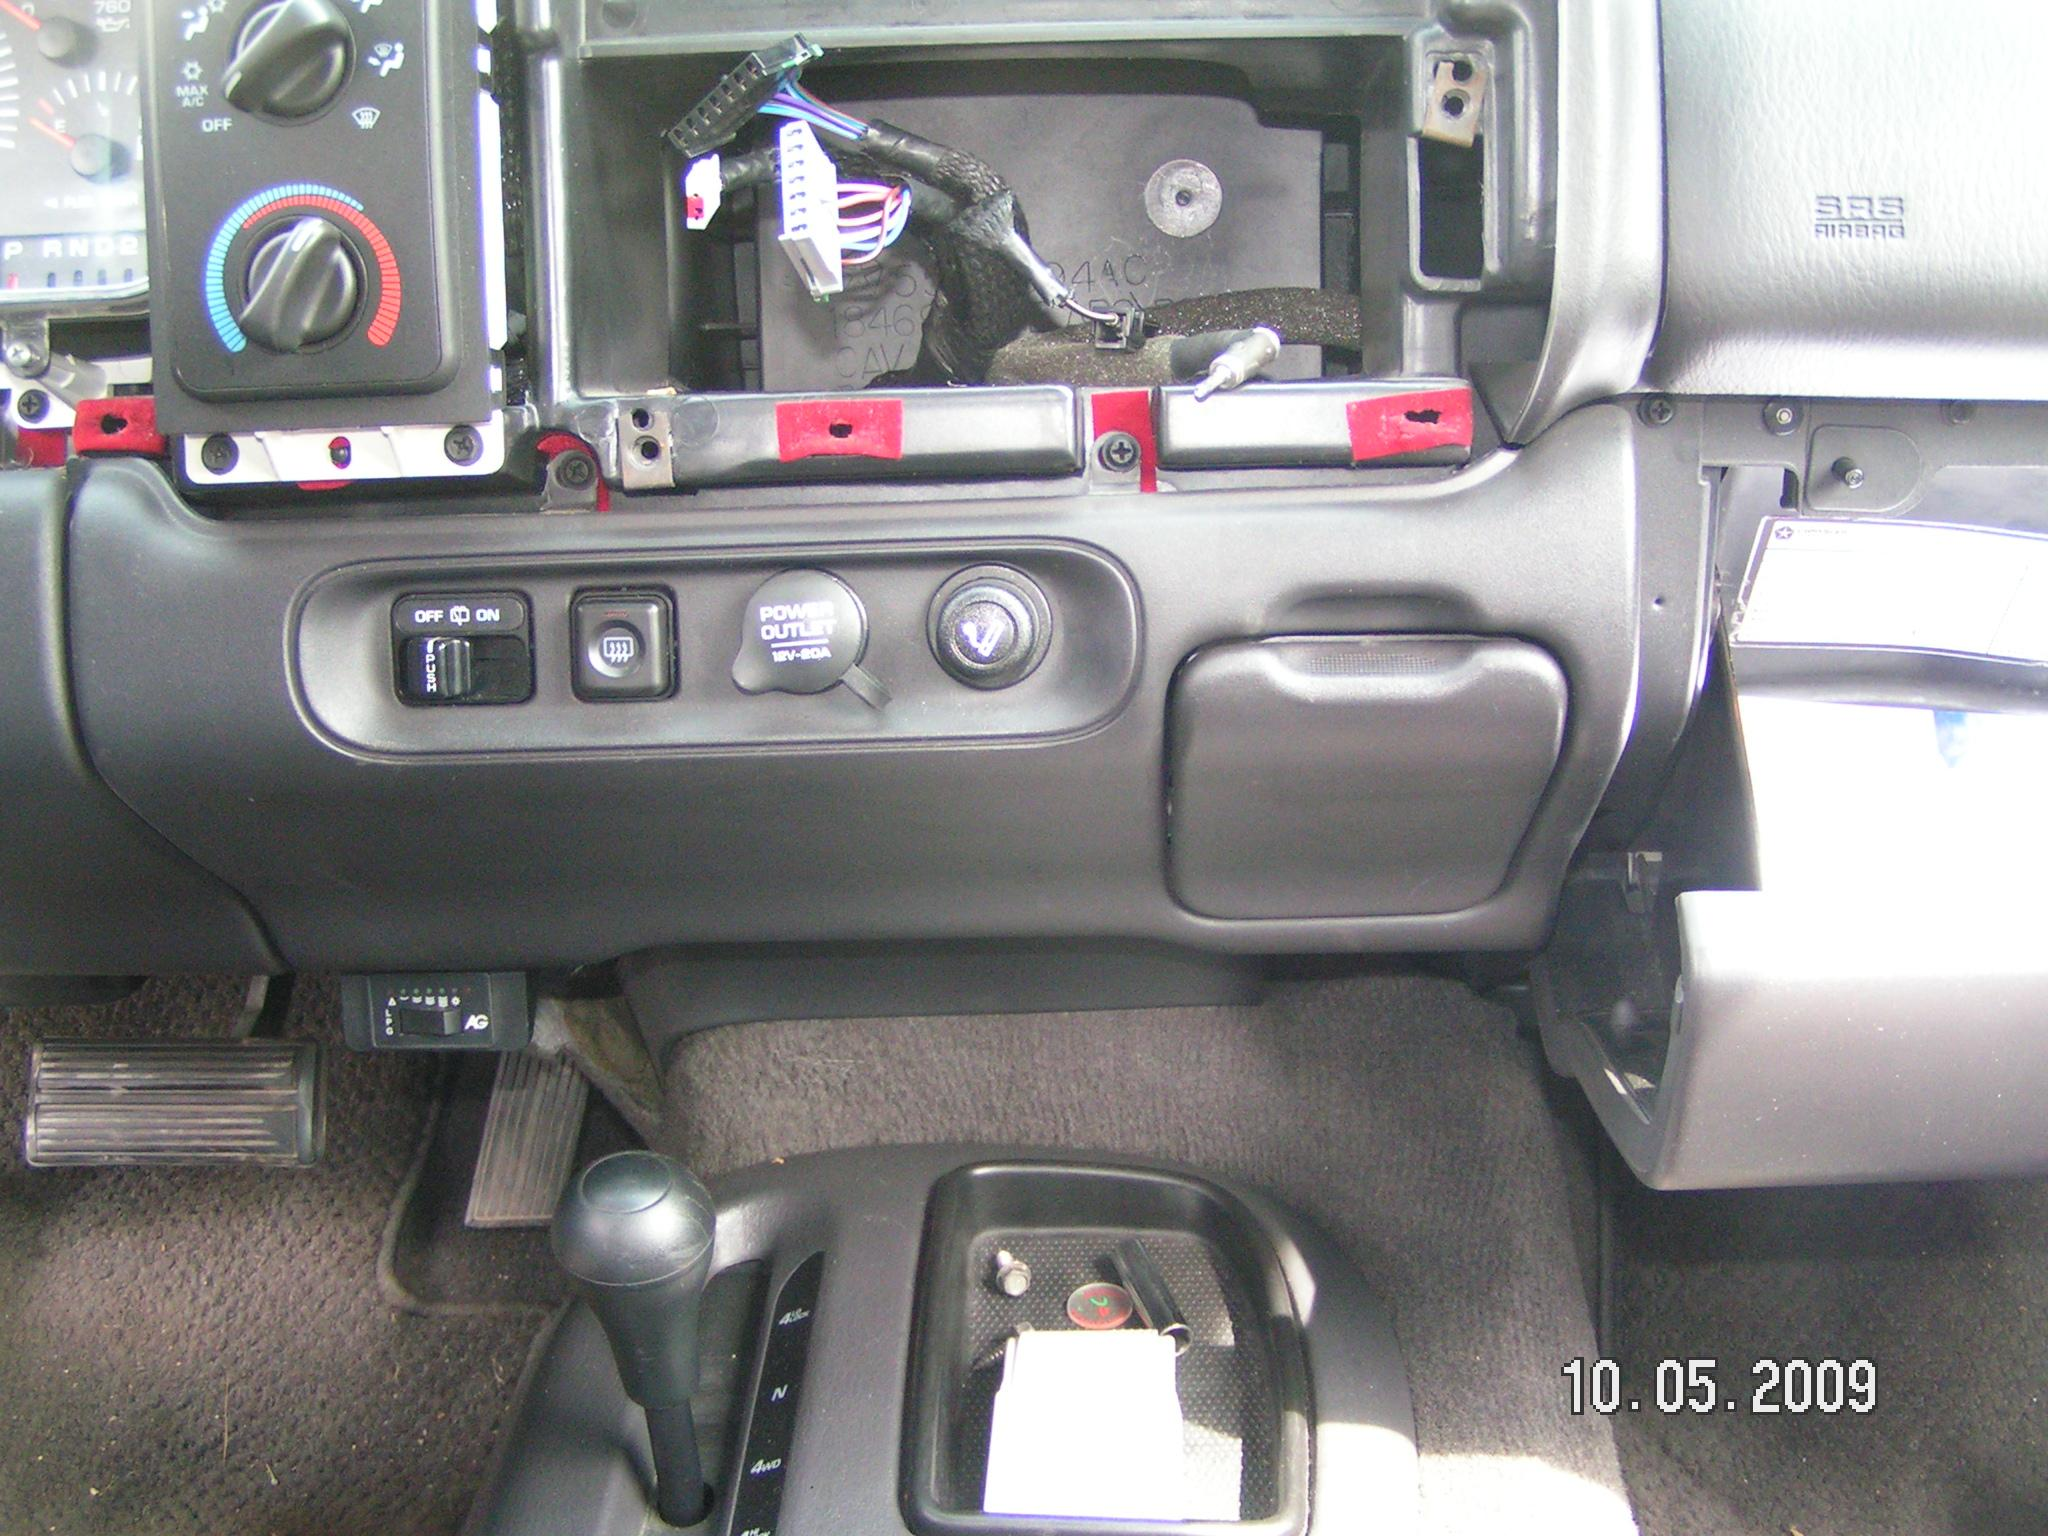 radio12 wiring diagram for stereo 1999 durango readingrat net 2011 dodge durango radio wiring diagram at nearapp.co